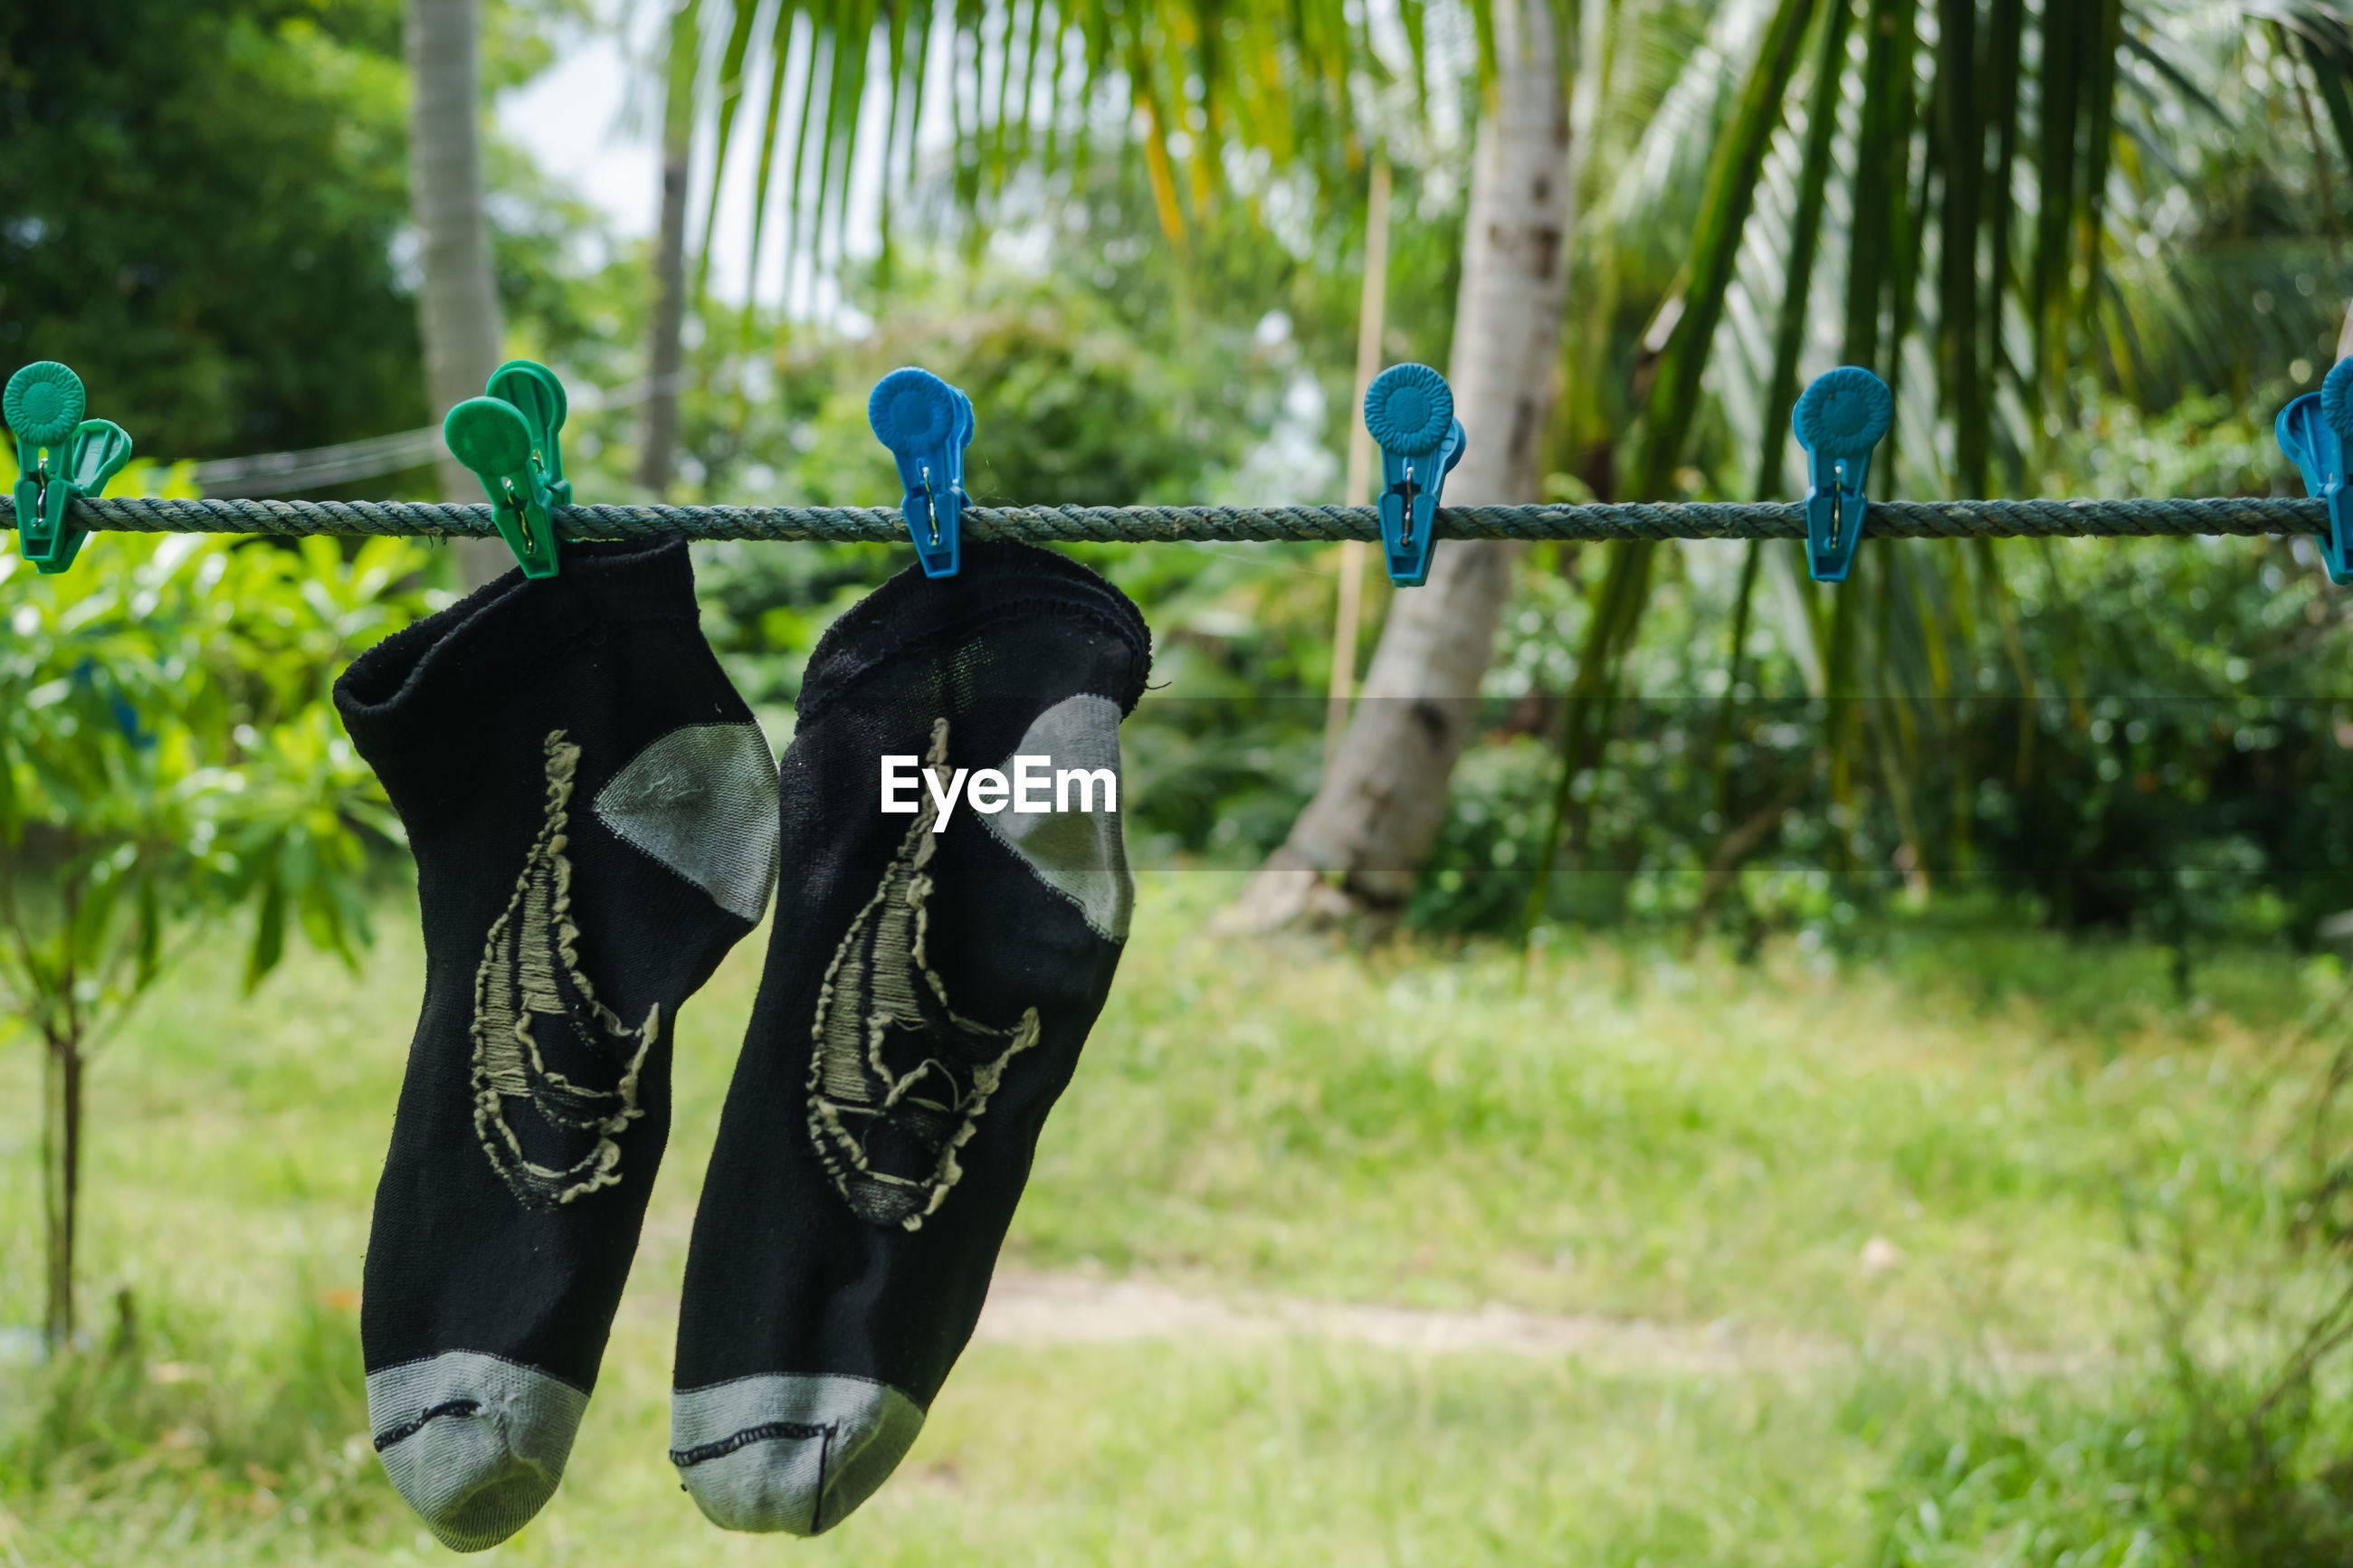 CLOSE-UP OF SHOES HANGING ON PLANT OUTDOORS